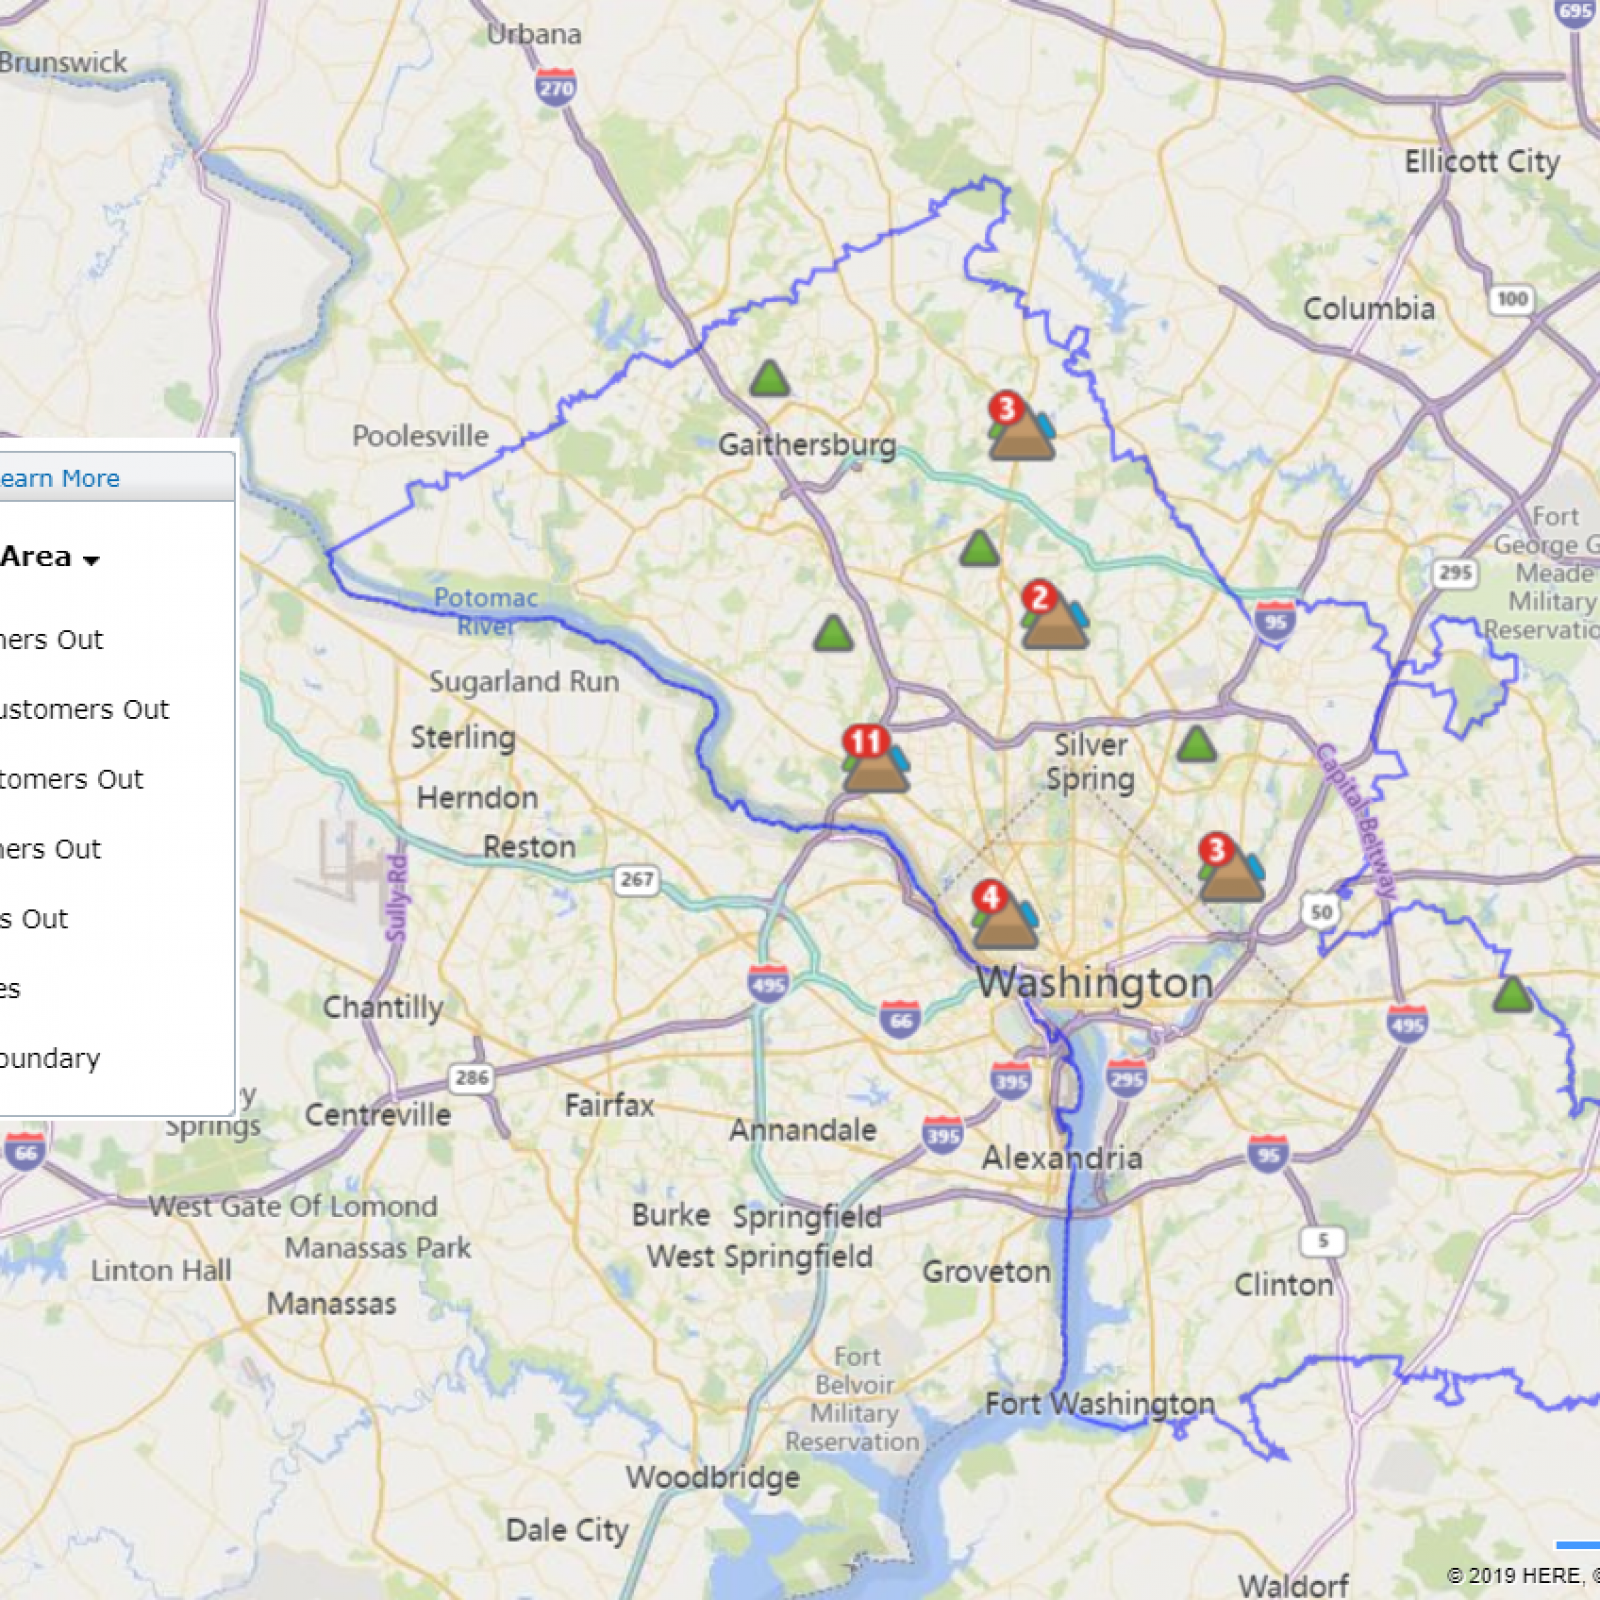 Dominion, Pepco Power Outage Maps: Halloween Storm Leaves ... on state area map, city of chicago area map, mall of america area map, south lake tahoe area map, sebring fl area map, travel area map, san francisco bay area city map, harrisburg area map, la area map, tri county area map, calgary area map, pennsylvania area map, shopping area map, michigan city area map, aaa area map, rogersville shale area map, ferguson mo area map, new smyrna beach area map, district of columbia area map, no va map,